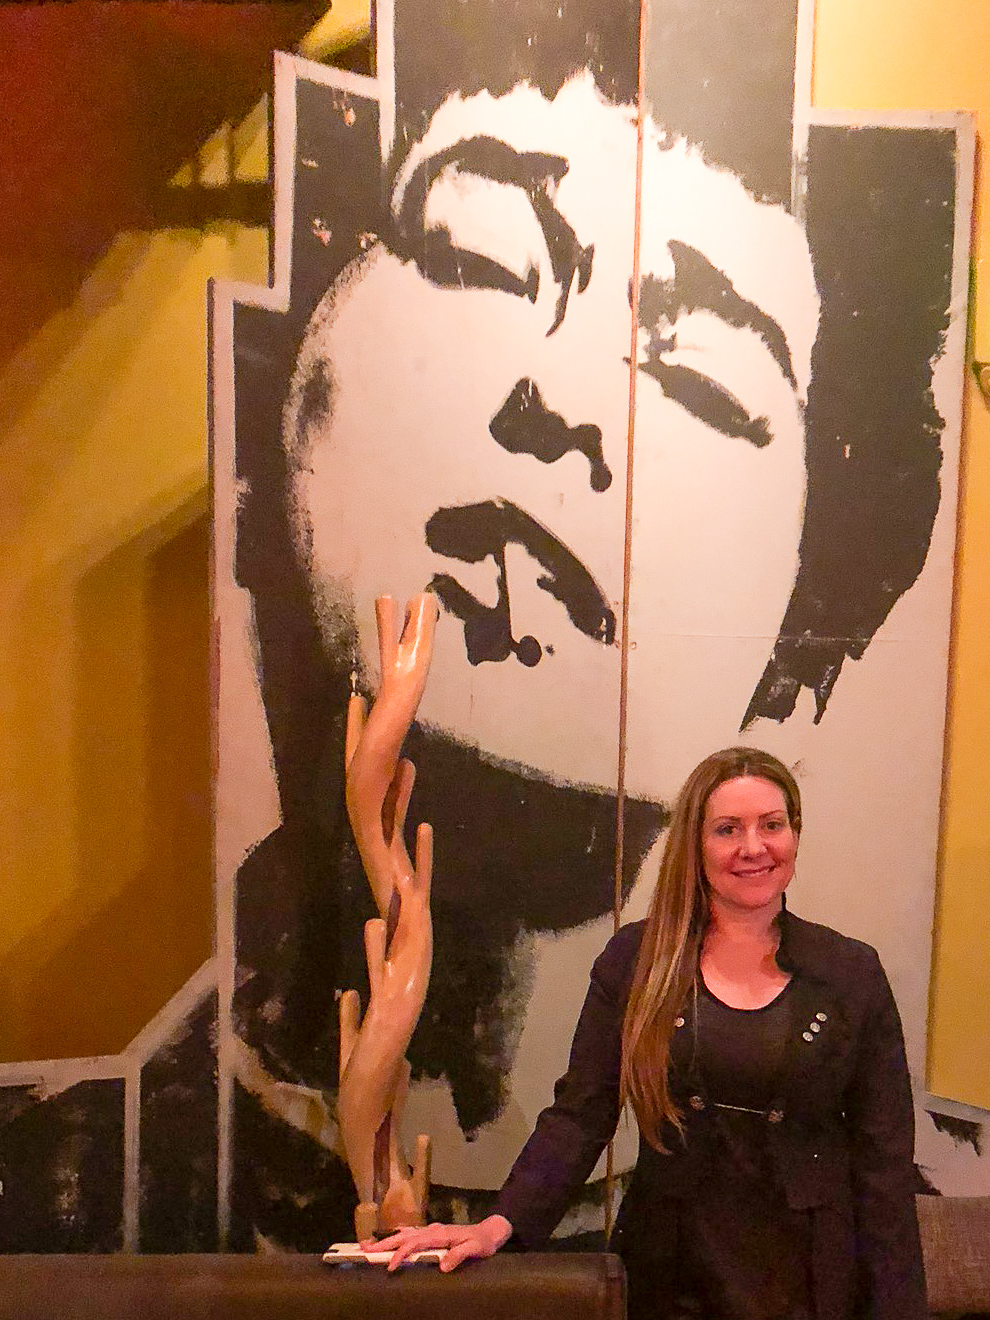 In front of the iconic Bob Dylan mural at The Carlisle Room in Seattle.